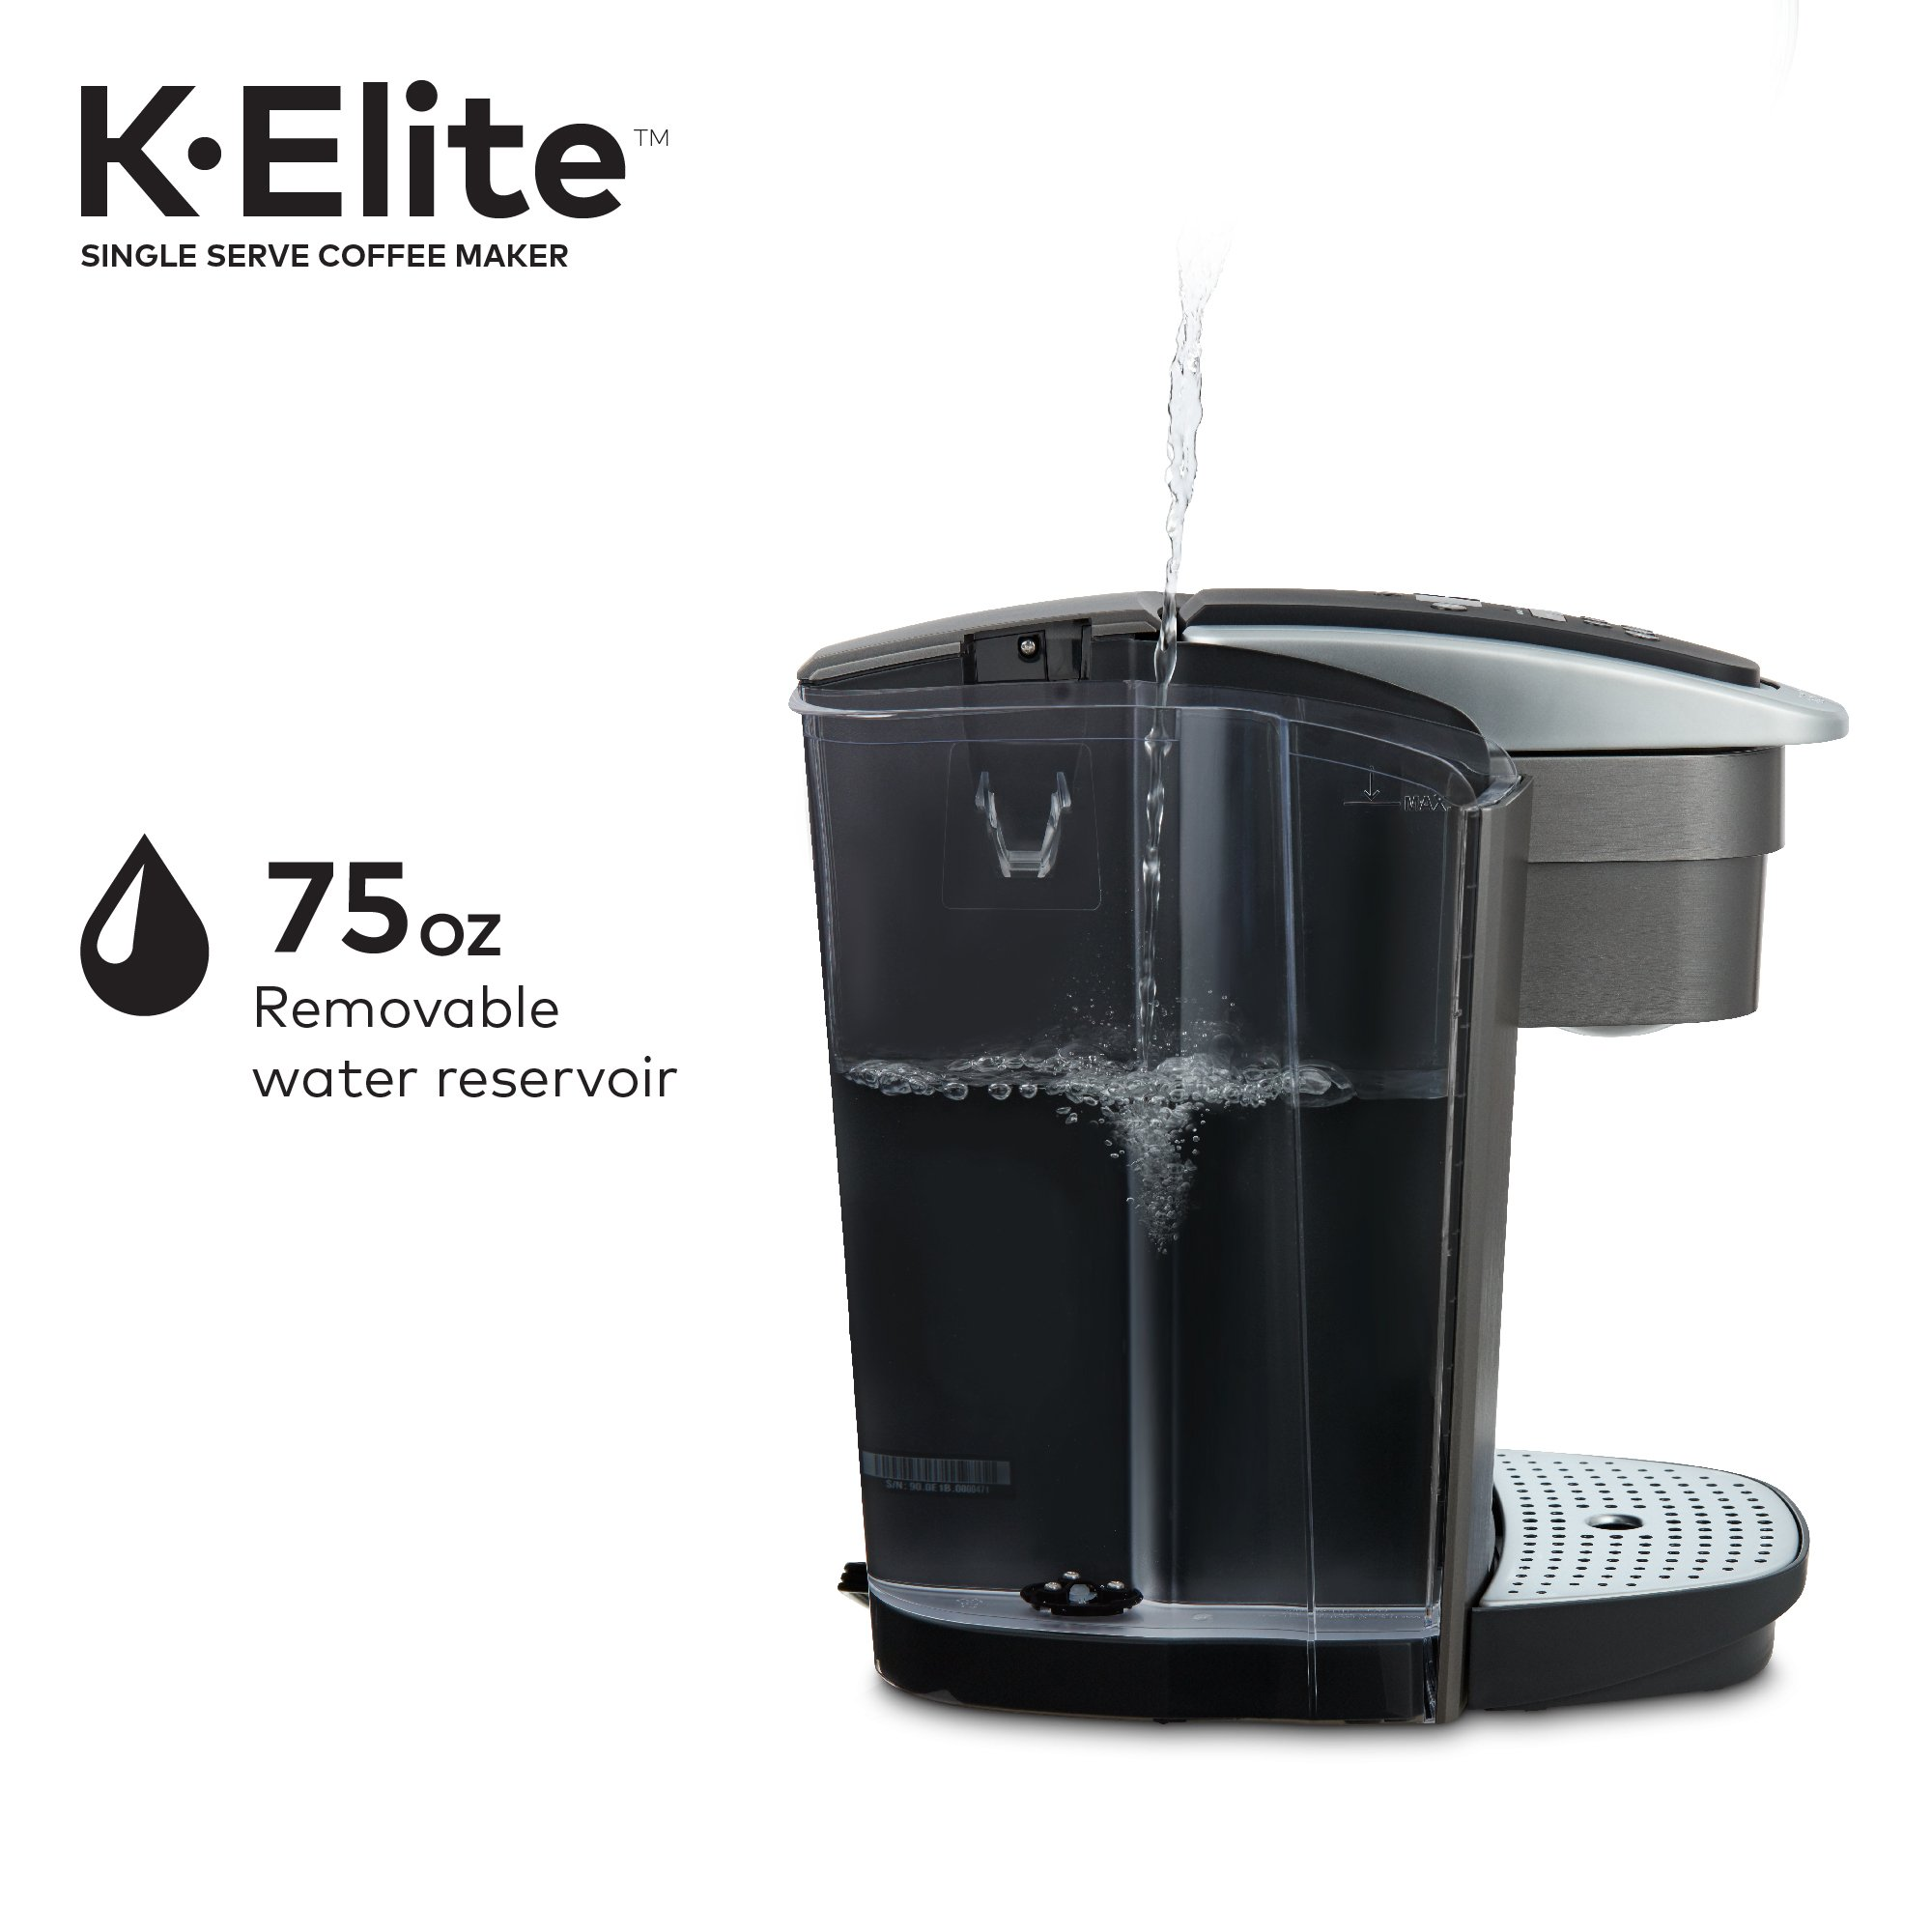 Keurig K-Elite K Single Serve K-Cup Pod Maker, with Strong Temperature Control, Iced Coffee Capability, 12oz Brew Size, Brushed Slate by Keurig (Image #13)